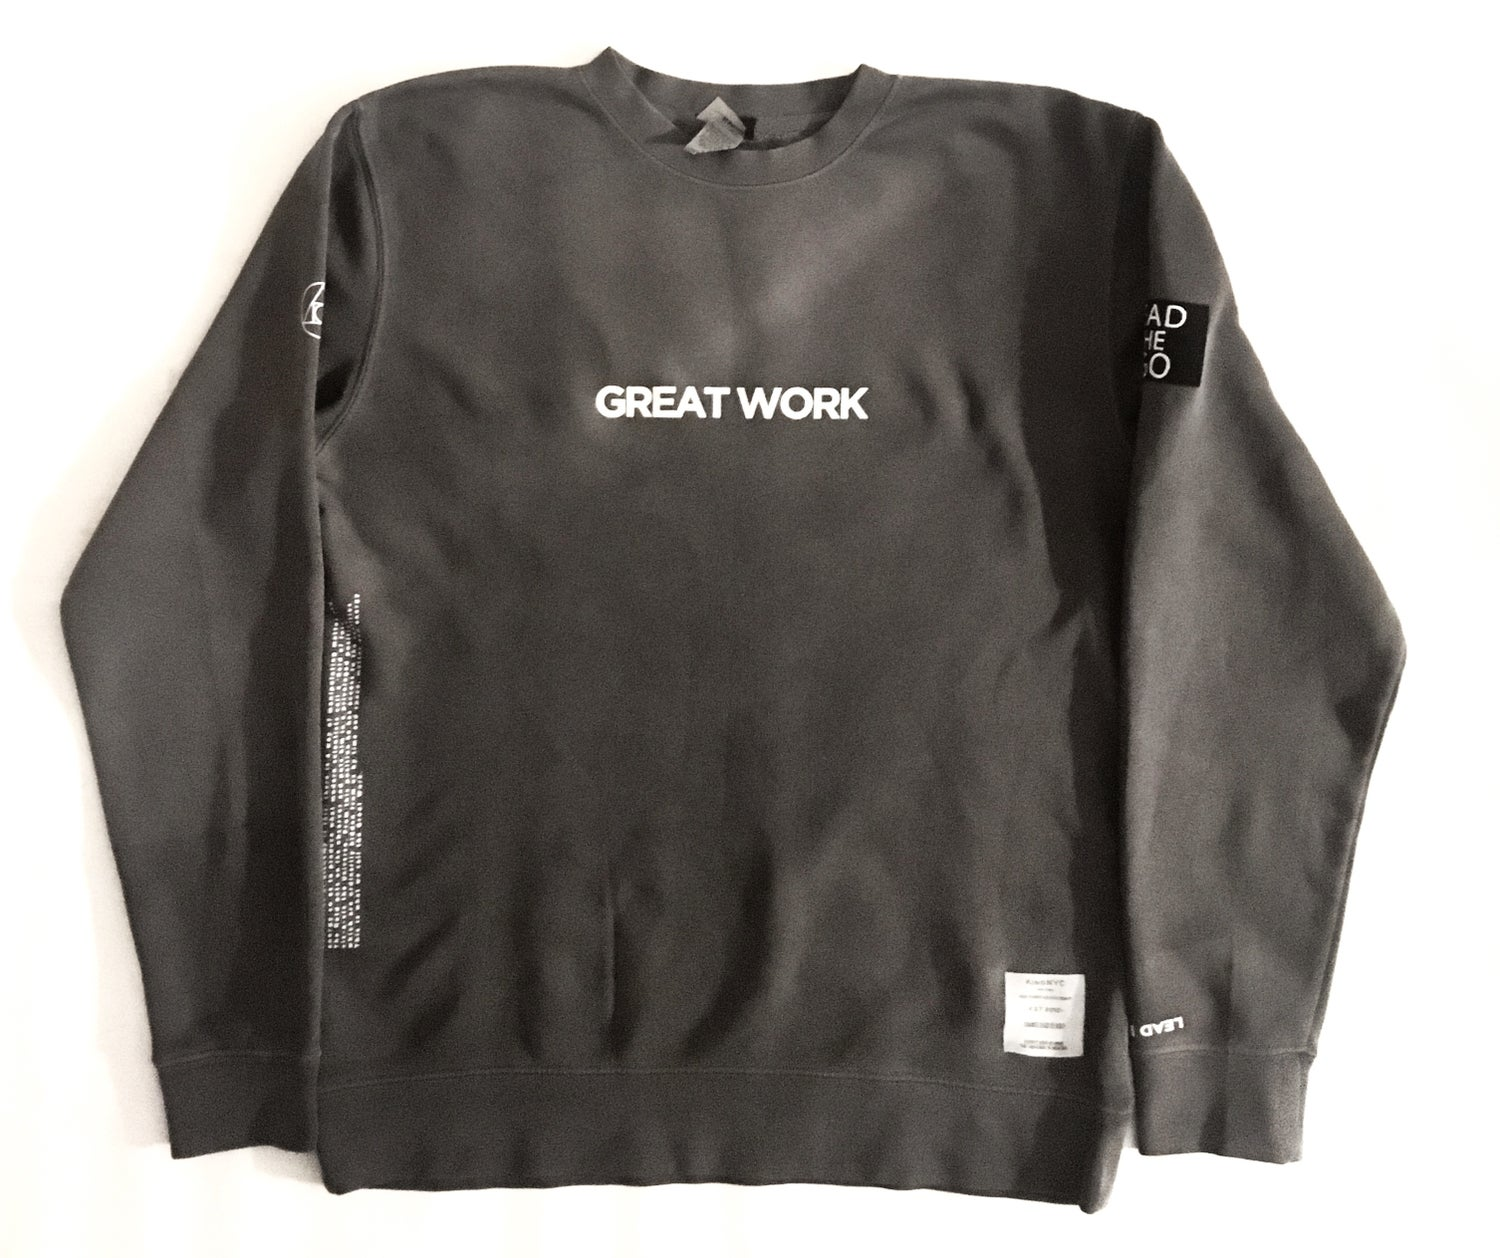 Image of KingNYC Great Work Crewneck